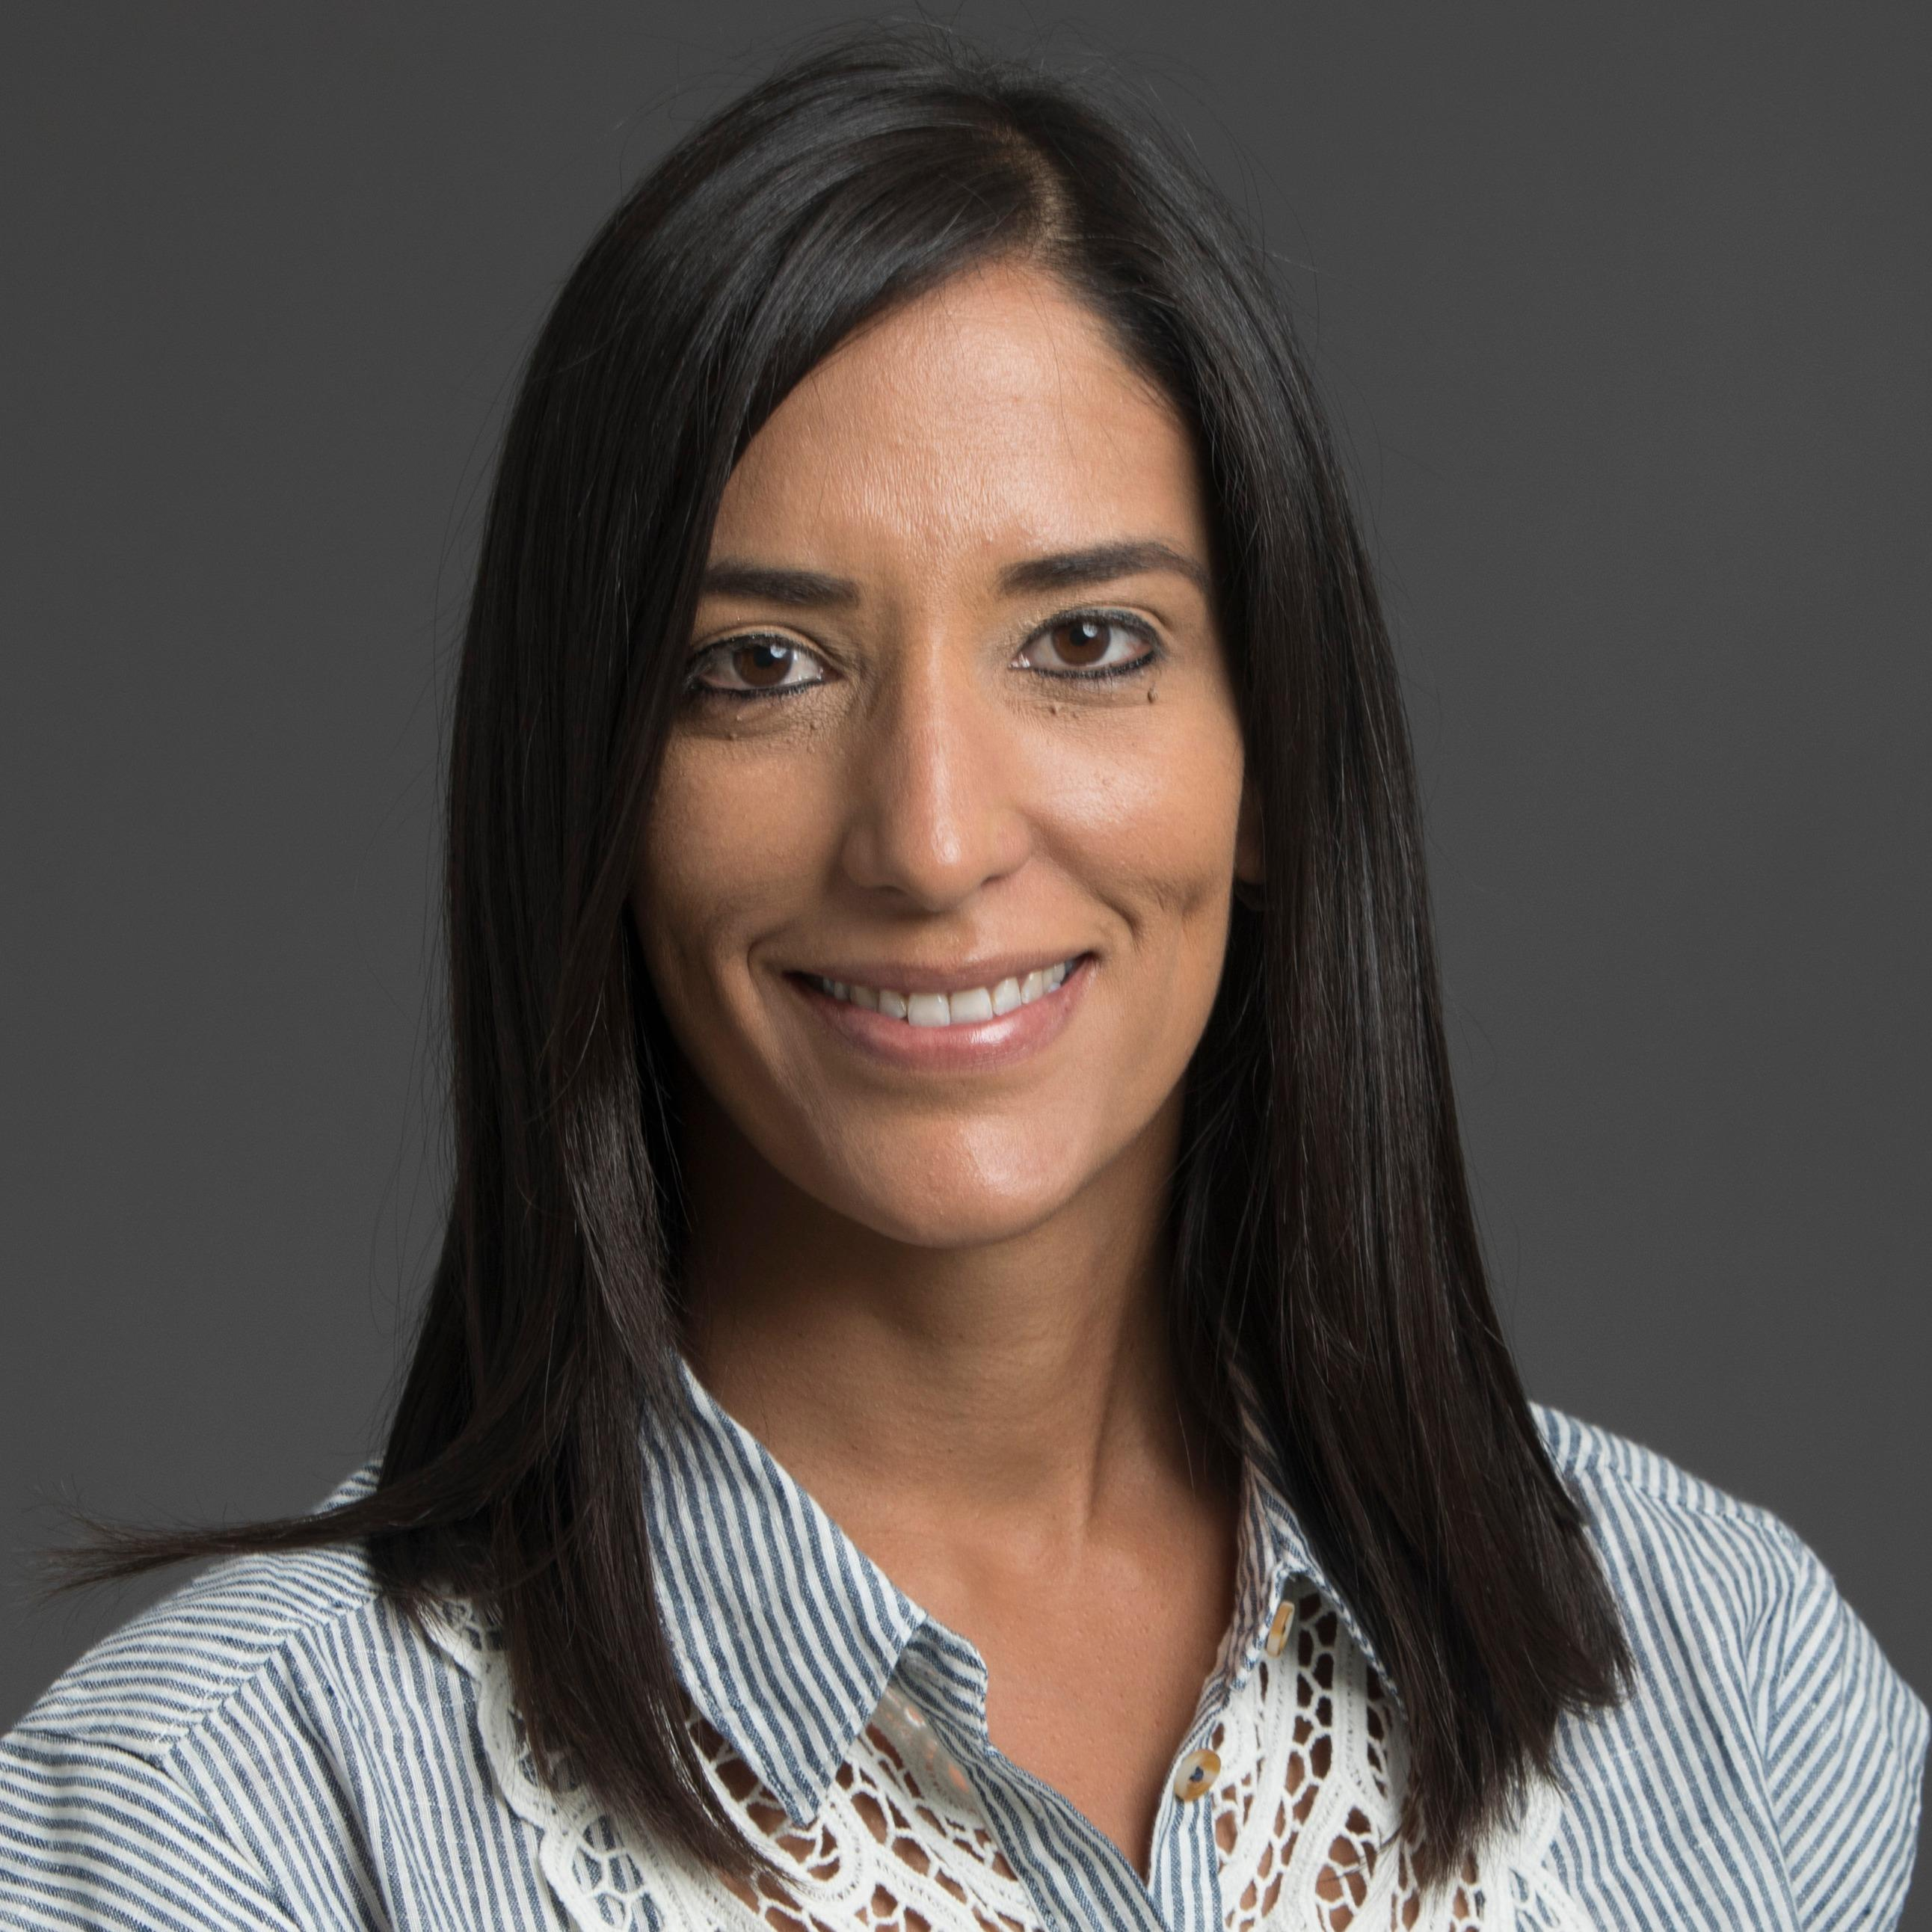 image of Sol M. Abreu-Sosa, MD